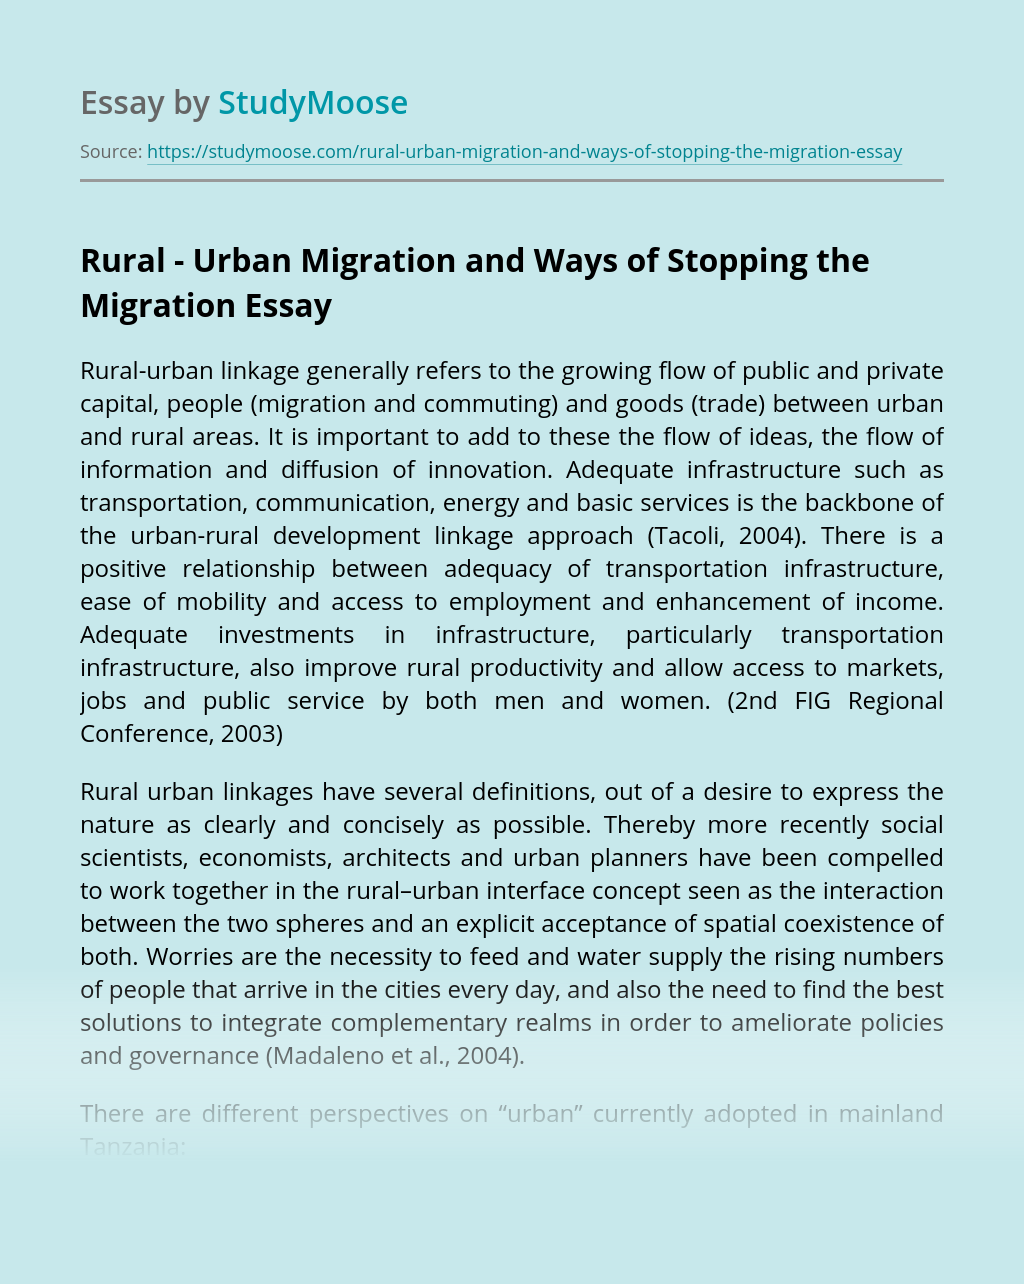 Rural - Urban Migration and Ways of Stopping the Migration